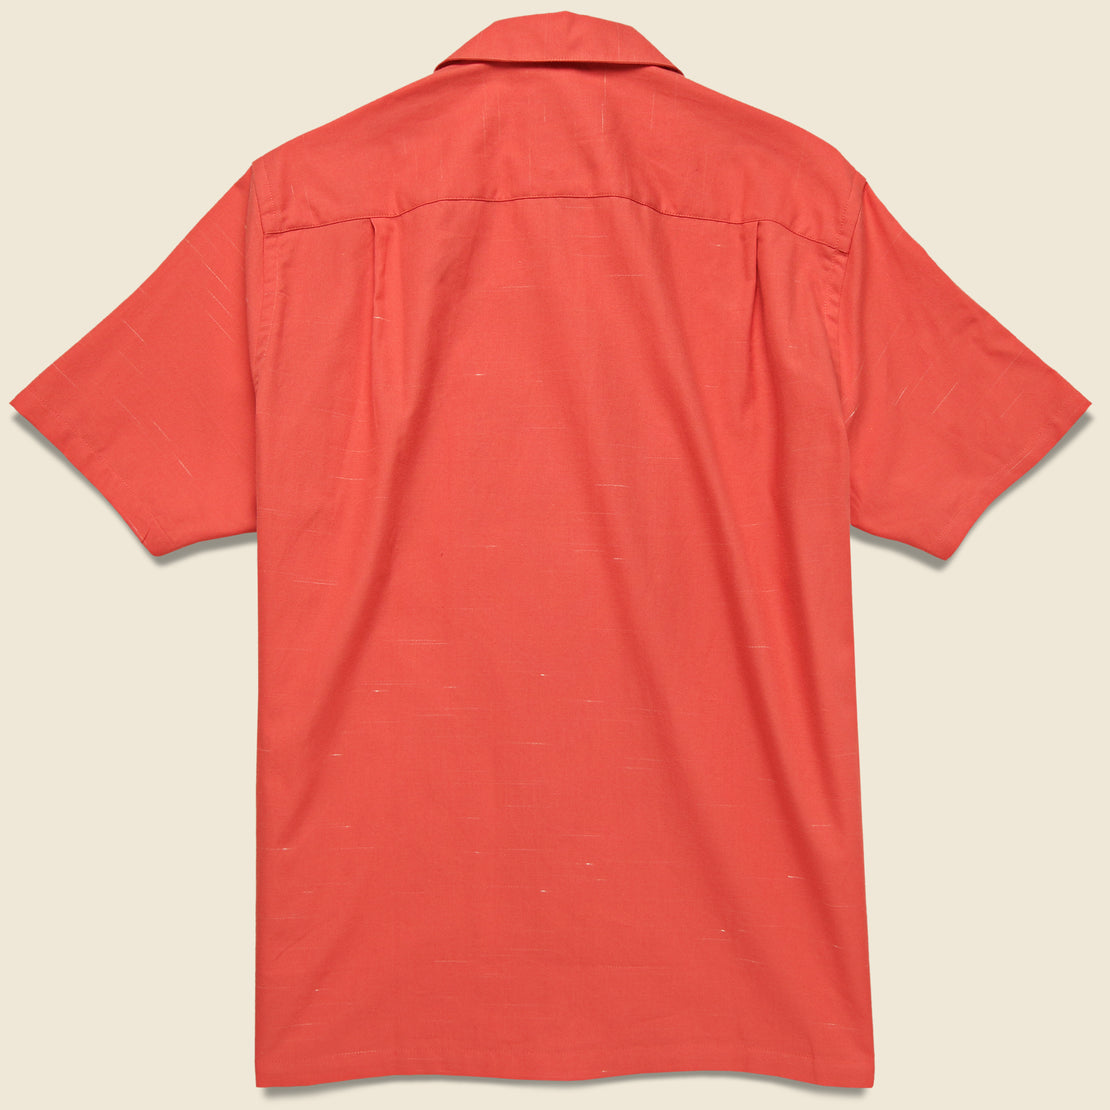 Soup Camp Shirt - Red